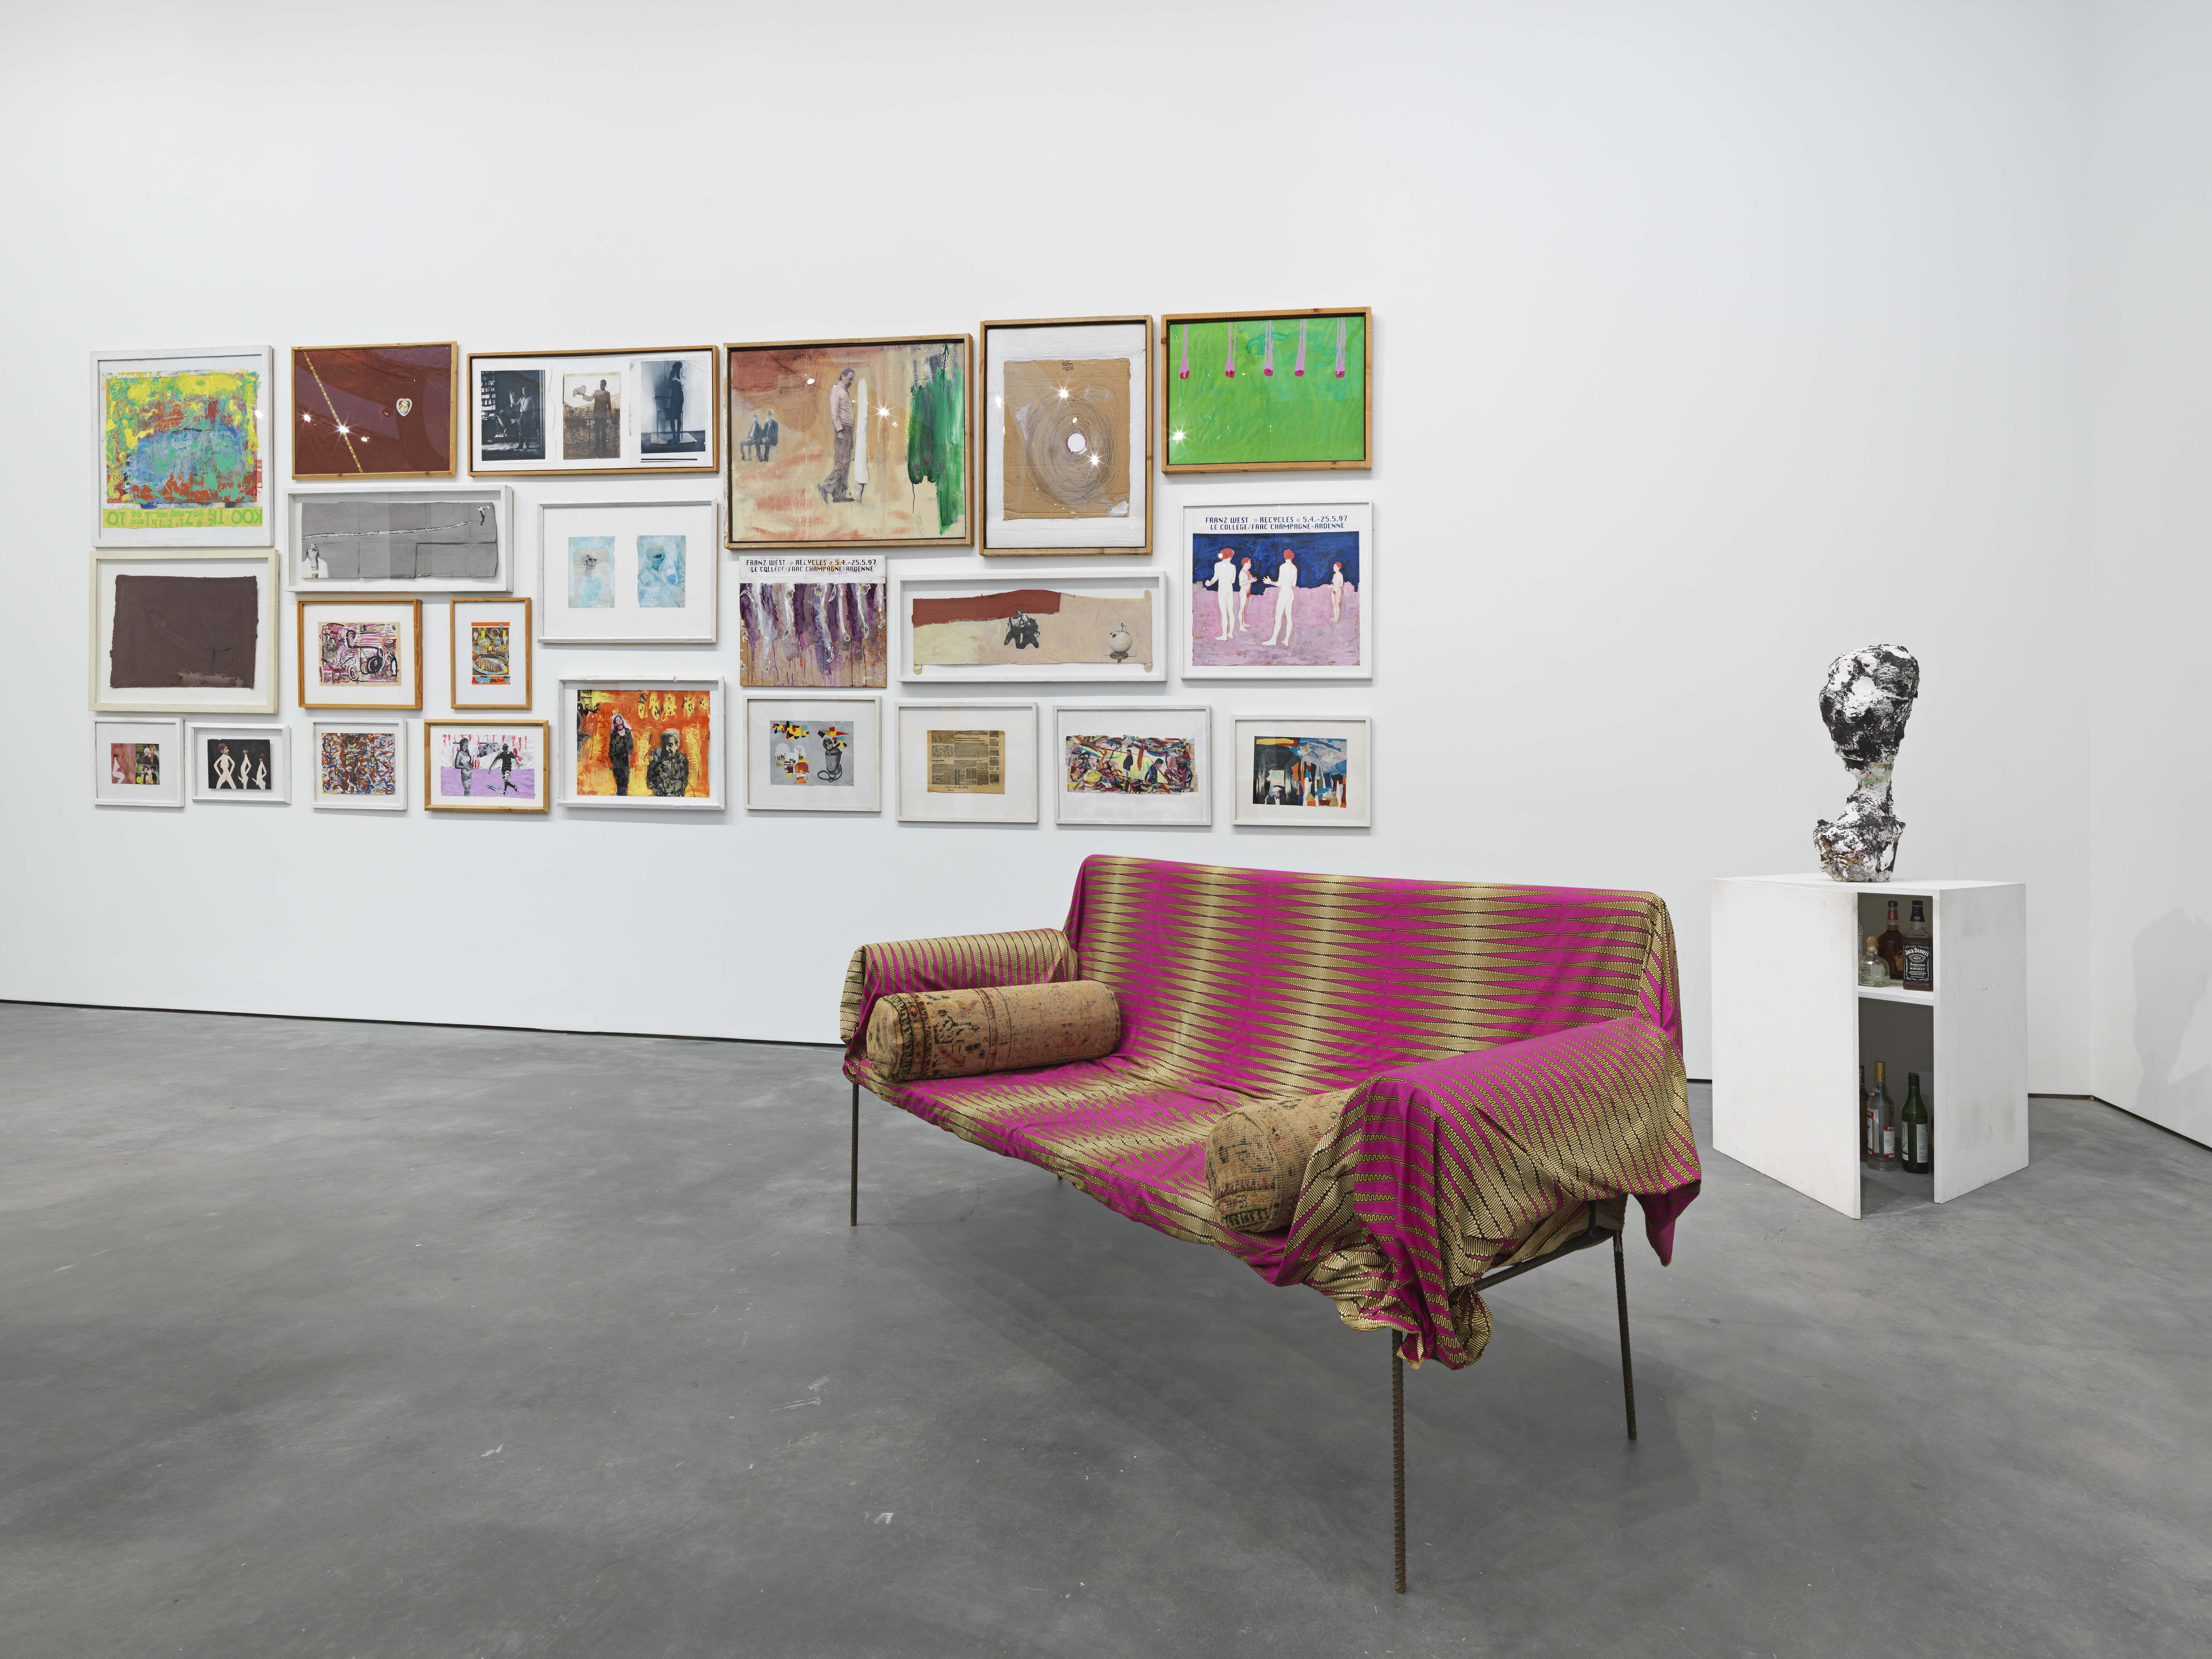 Installation view of Franz West's work, L'Art pour l'Art  (1973-1997), Divan (2003) and Telefonskulptur (1995). (Photo by Genevieve Hanson, courtesy of David Zwirner, New York/London)